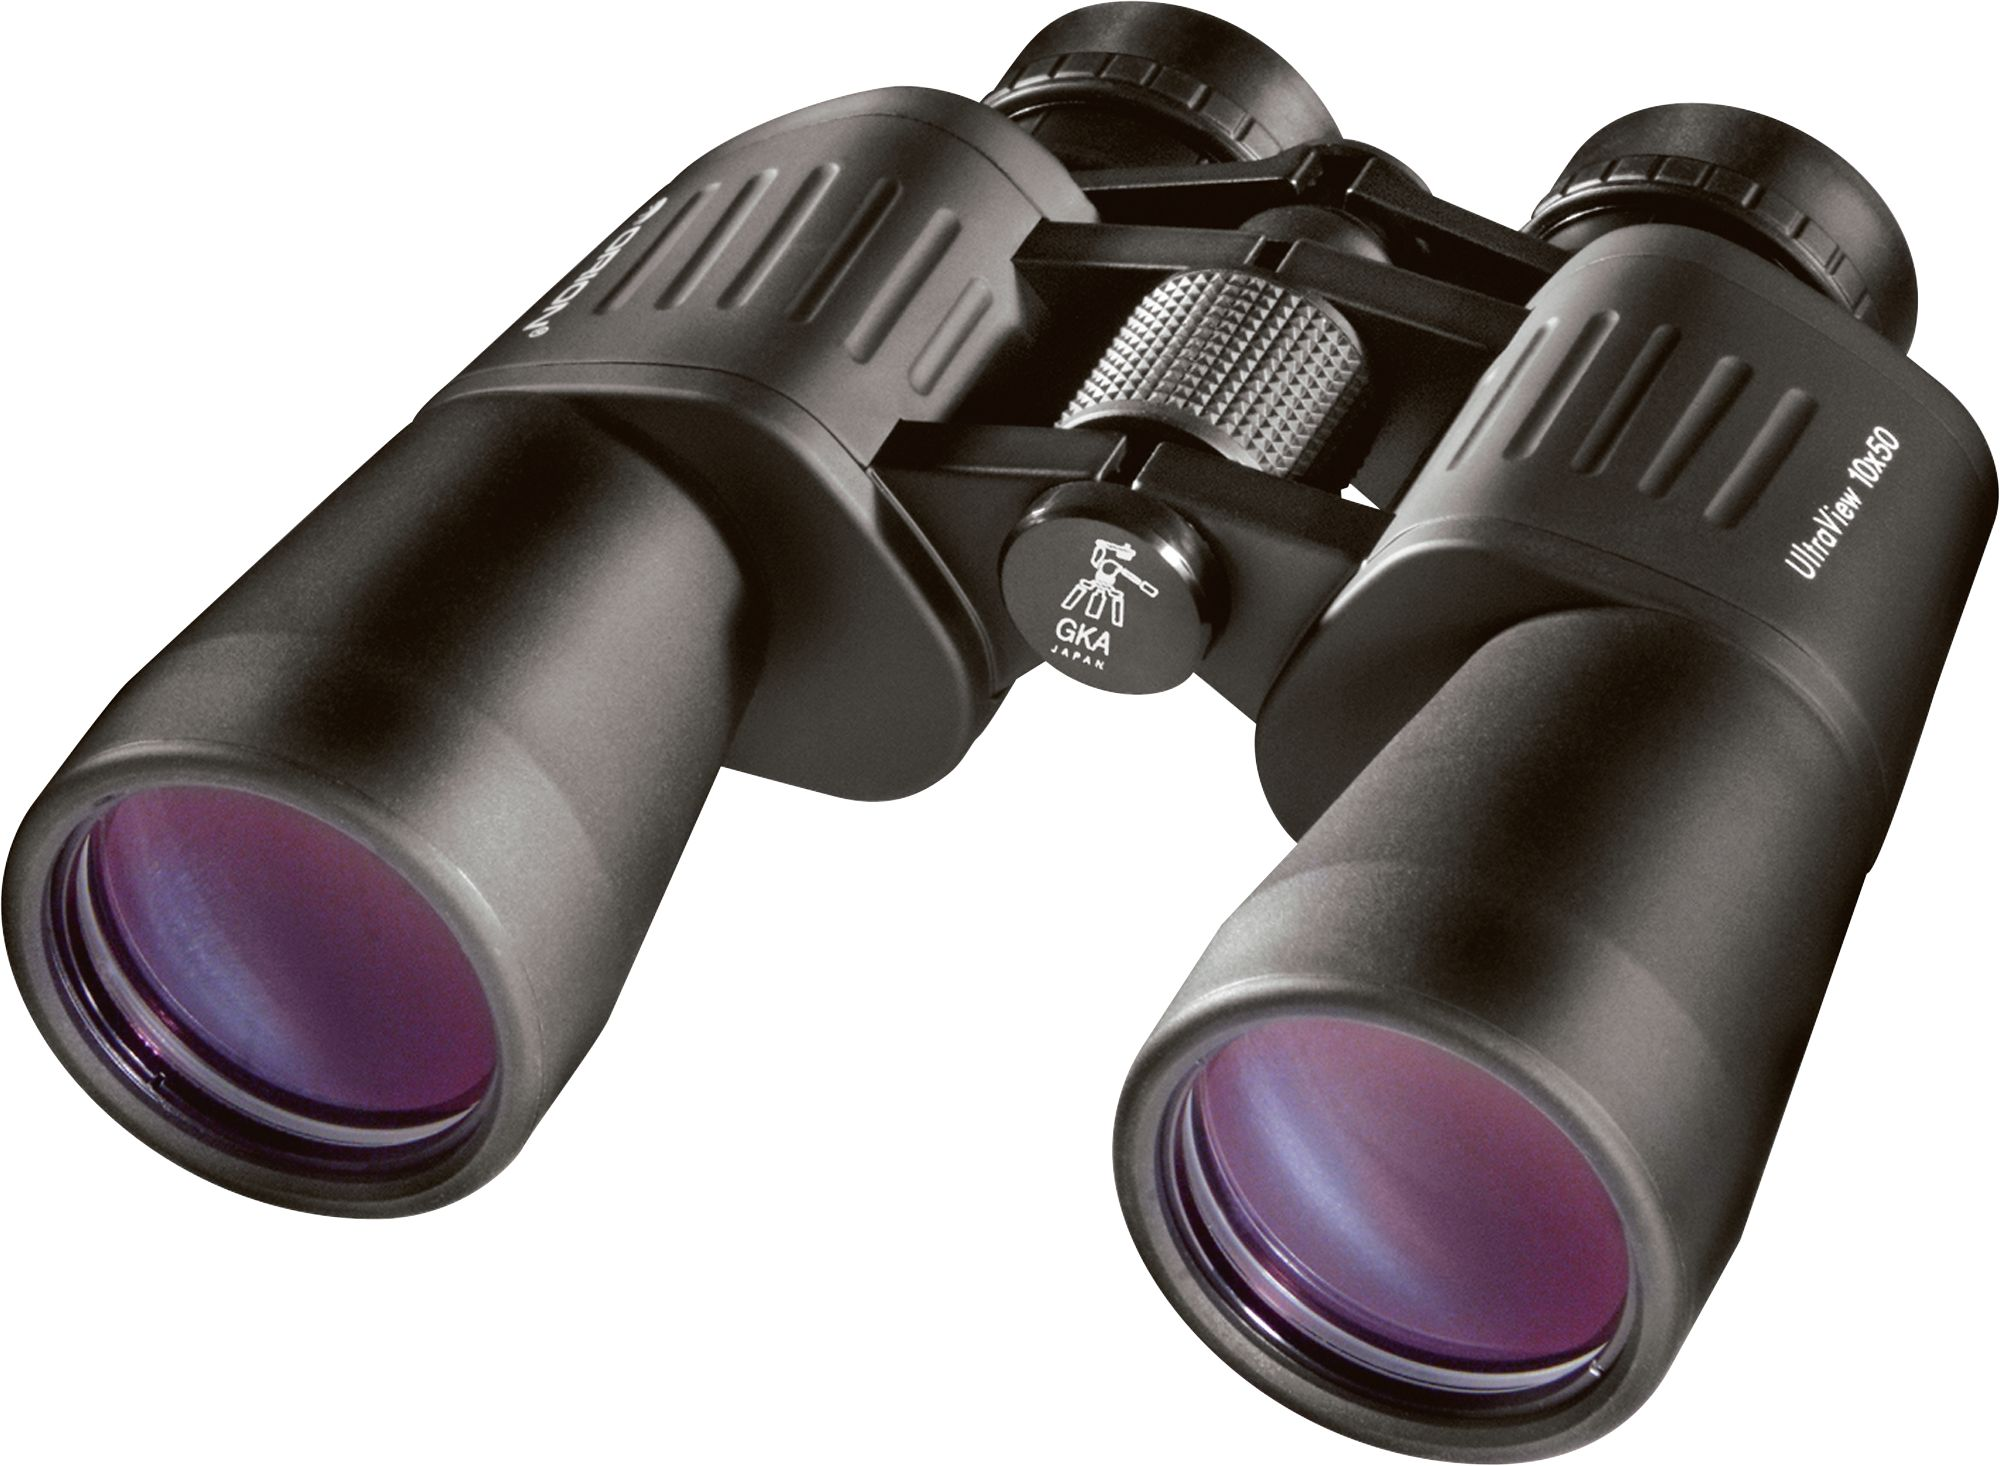 Orion 10x50 UltraView Wide-Angle Binocular